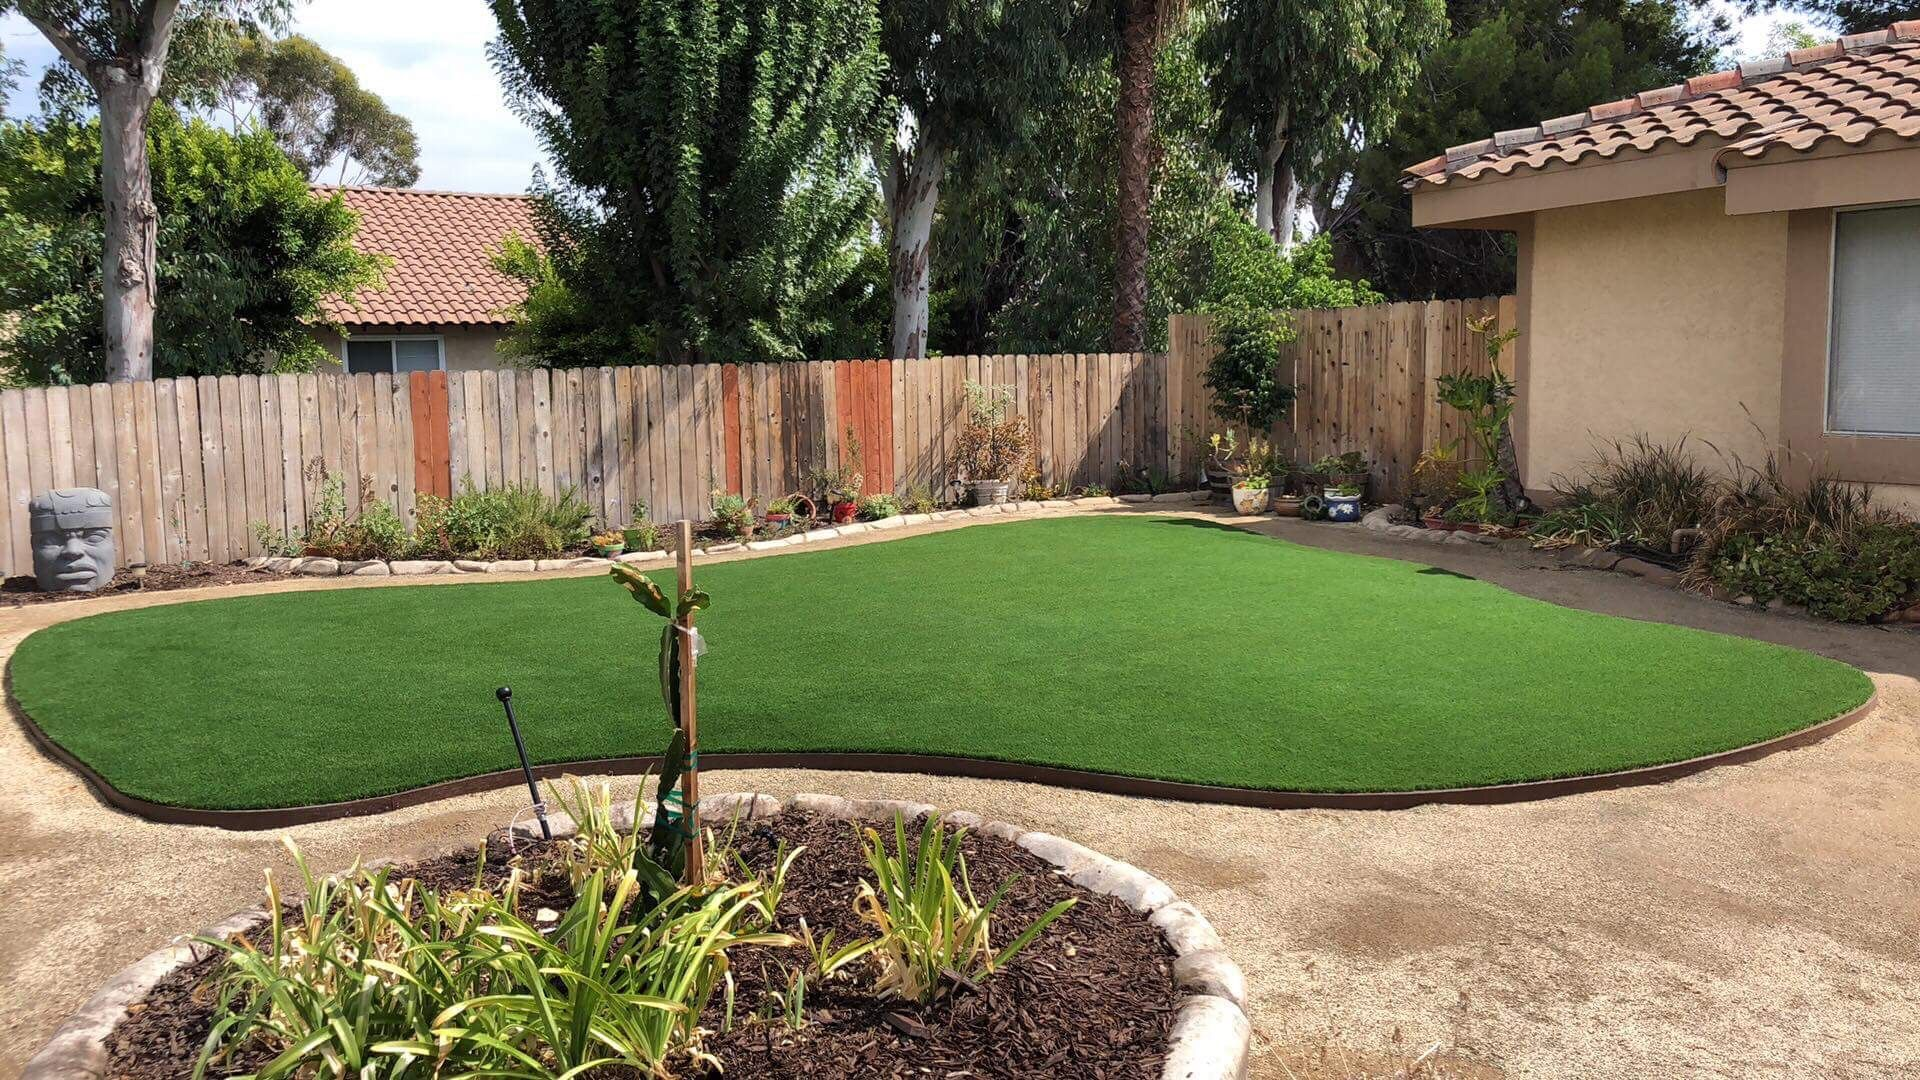 Artificial Grass San Diego Ca With Images Artificial Grass